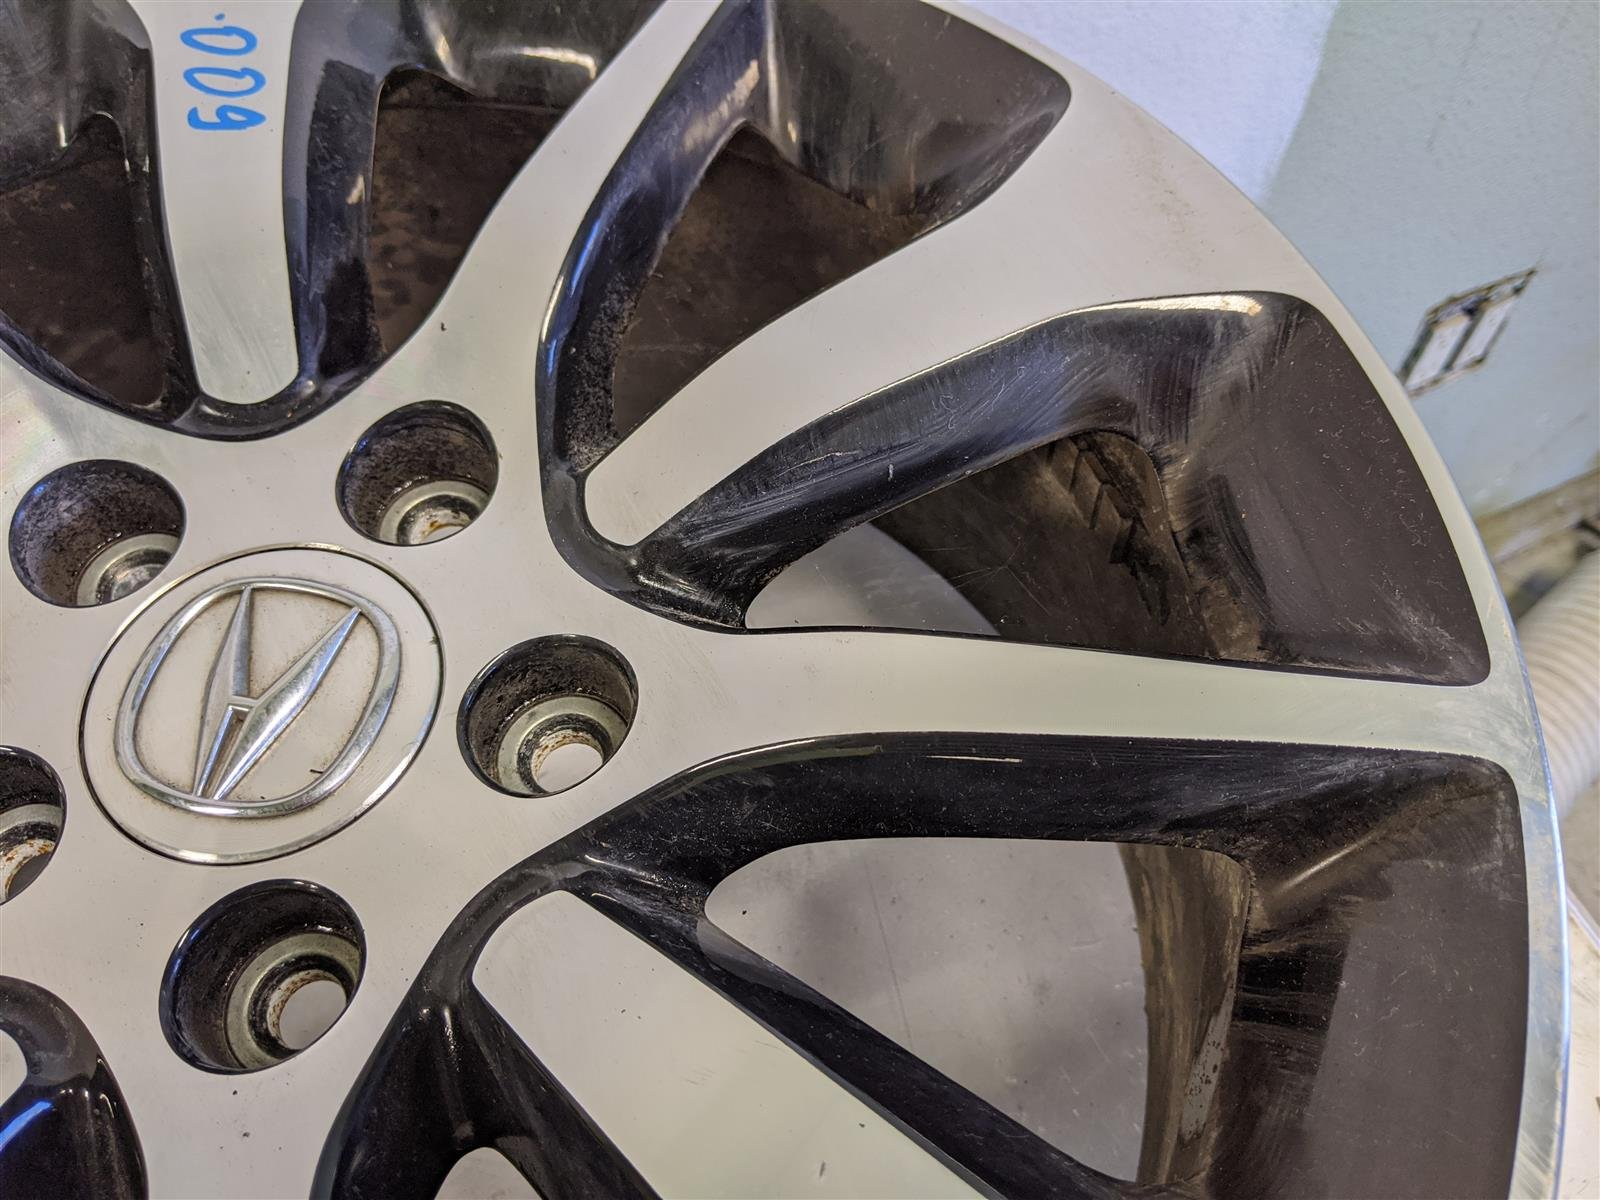 2017 Acura TLX 17 Inch Alloy Rim Used Scratches Replacement